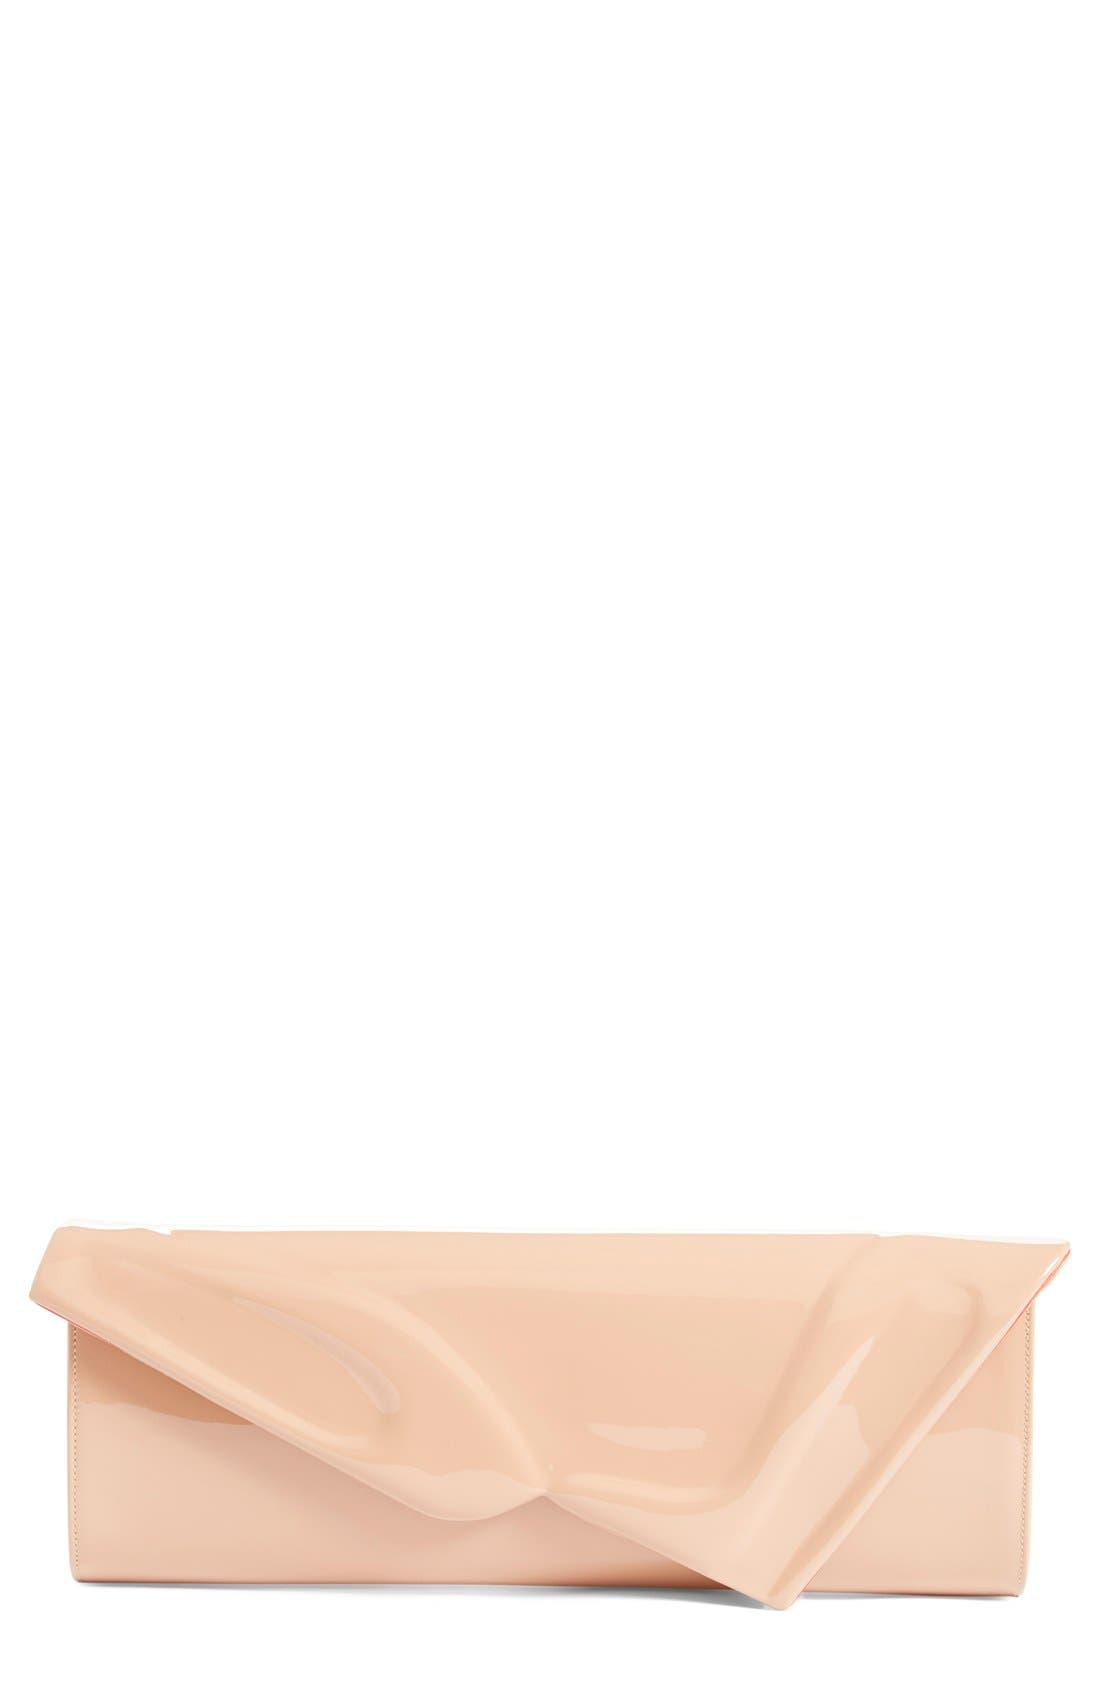 Main Image - Christian Louboutin 'So Kate' Patent Leather Clutch